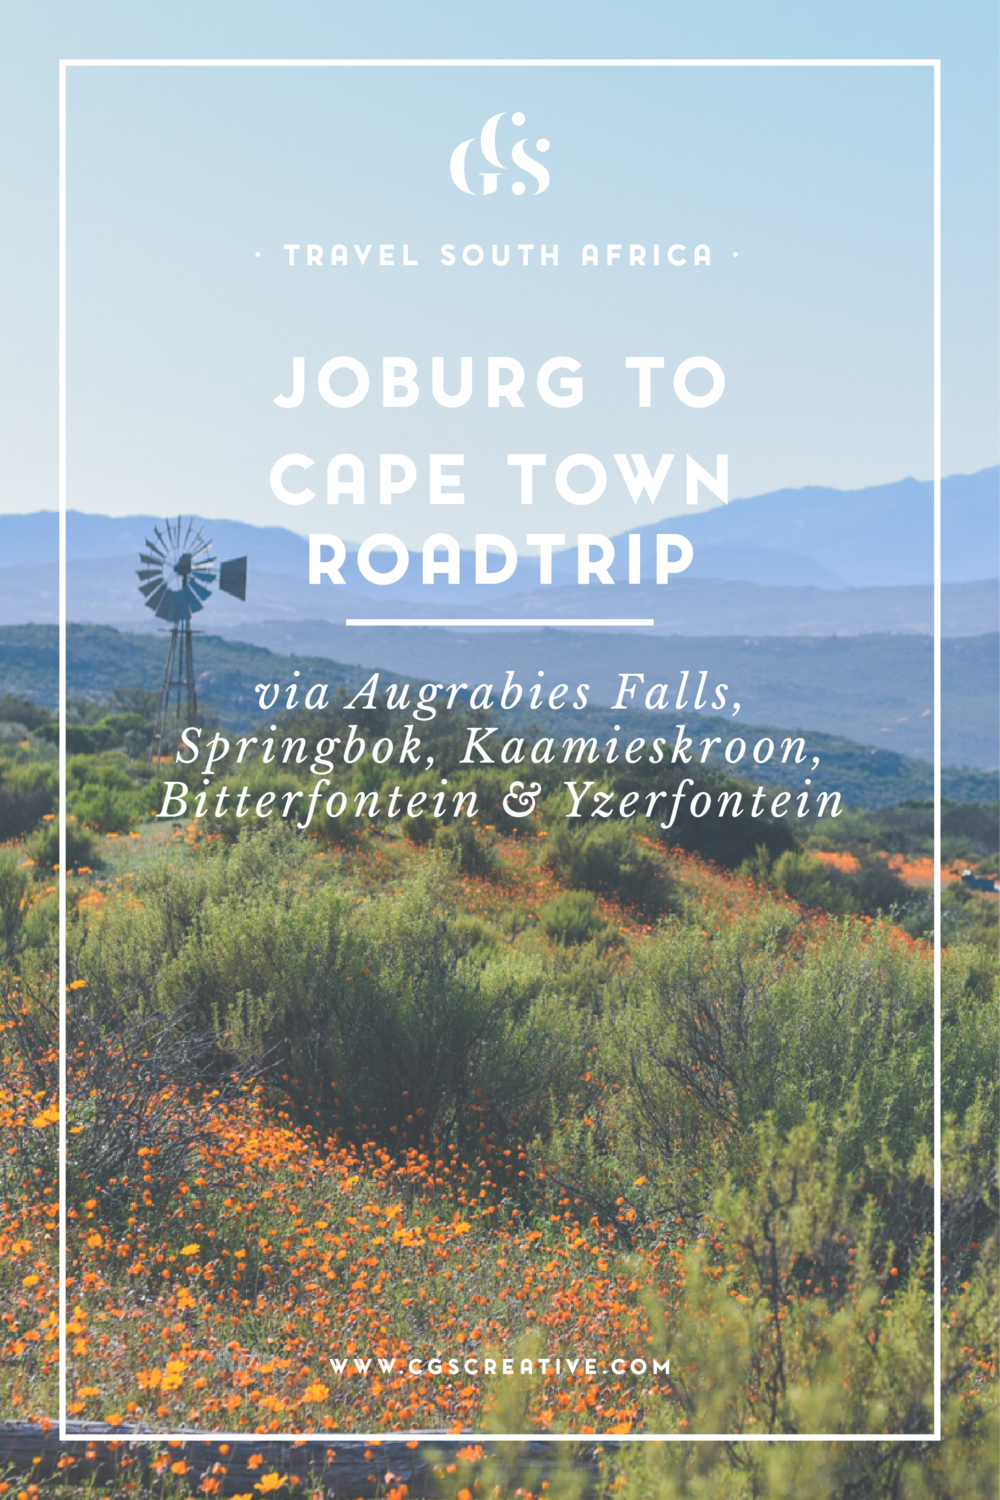 Joburg to Cape Town road trip with a dog travel south africa, namaqualand flowers, where to see flowers cape town, where to stay with a dog road trip south africa